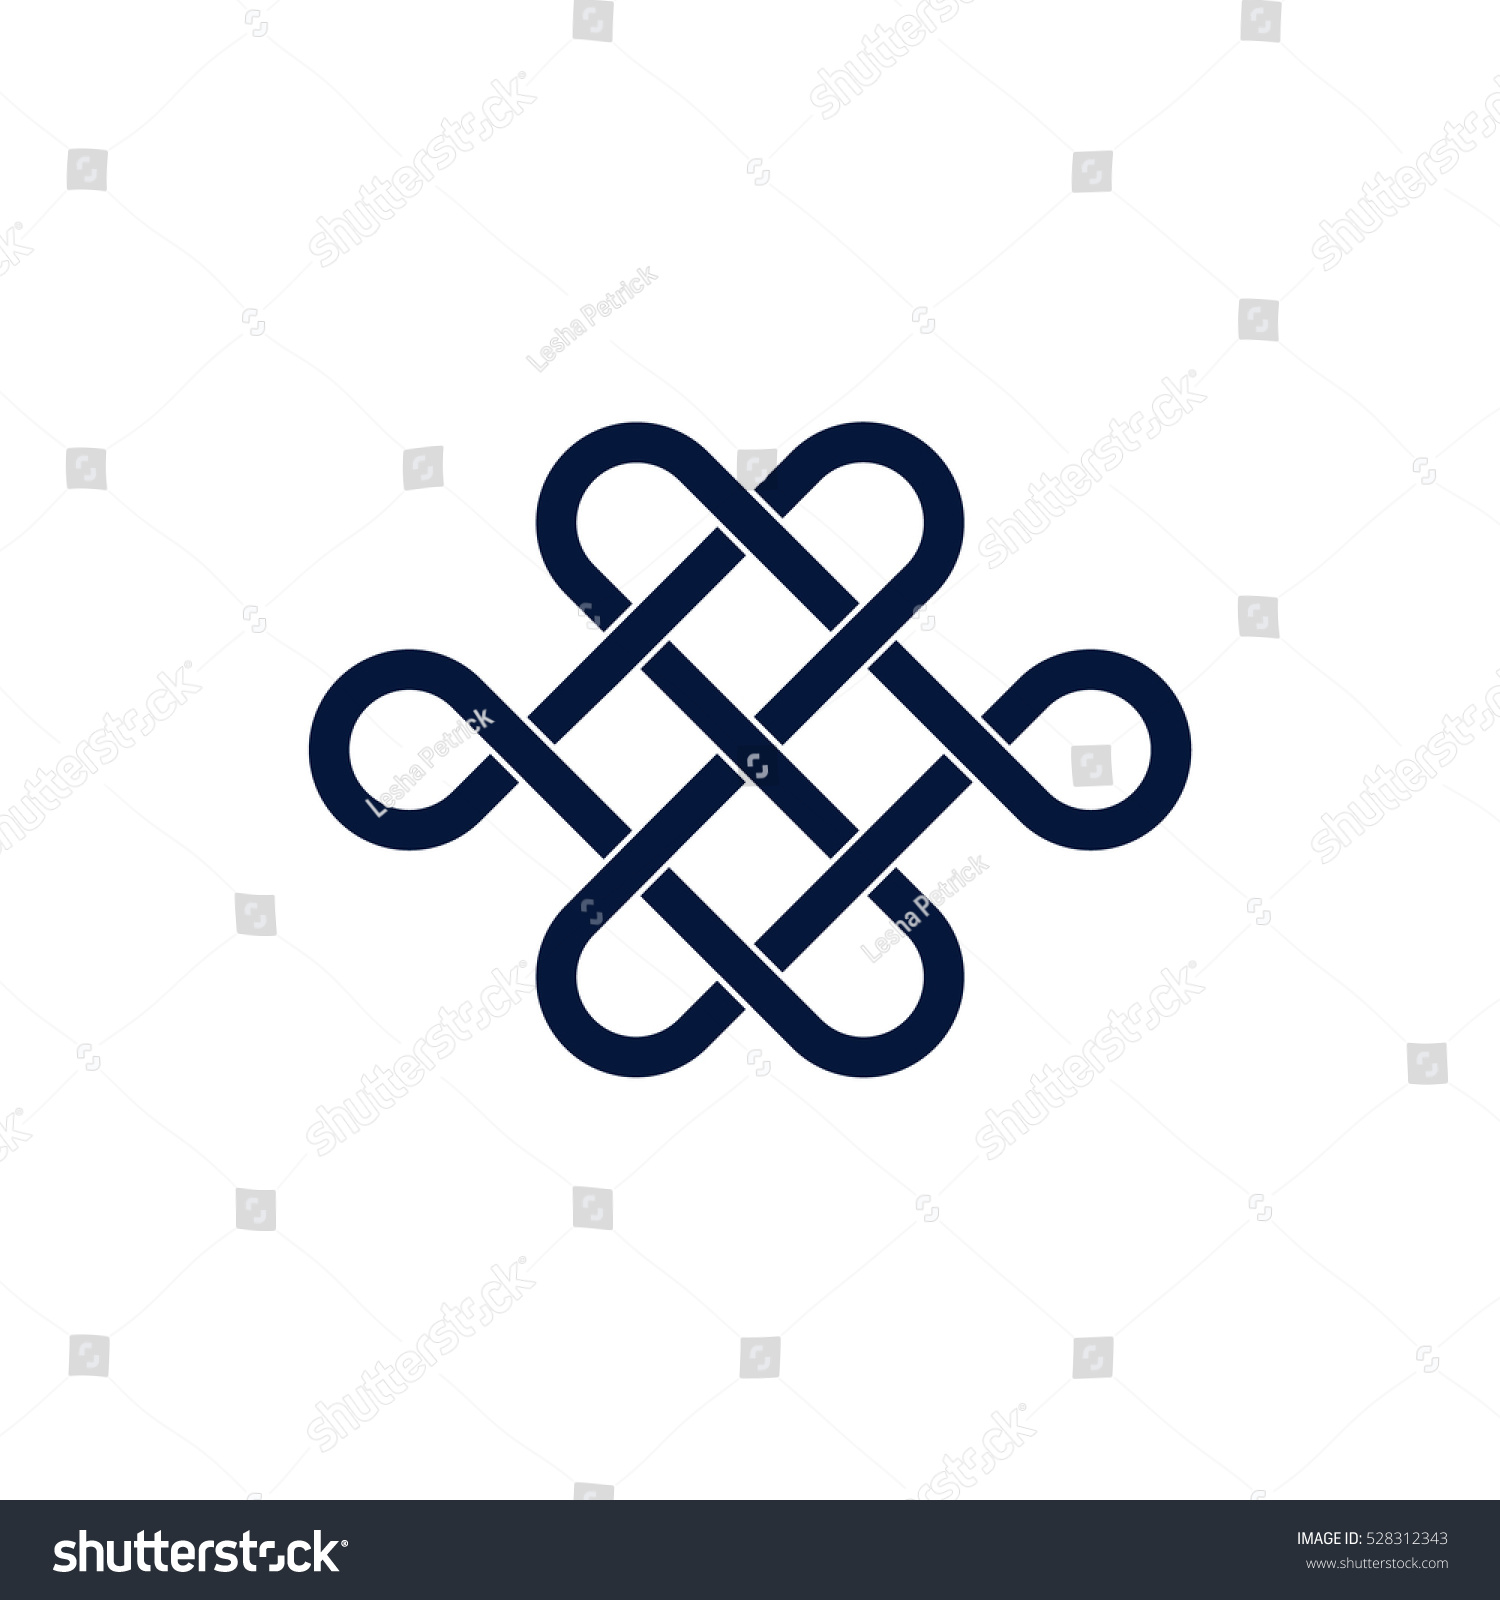 Mystic Knot Minimalistic Flat Line Color Stock Vector Royalty Free